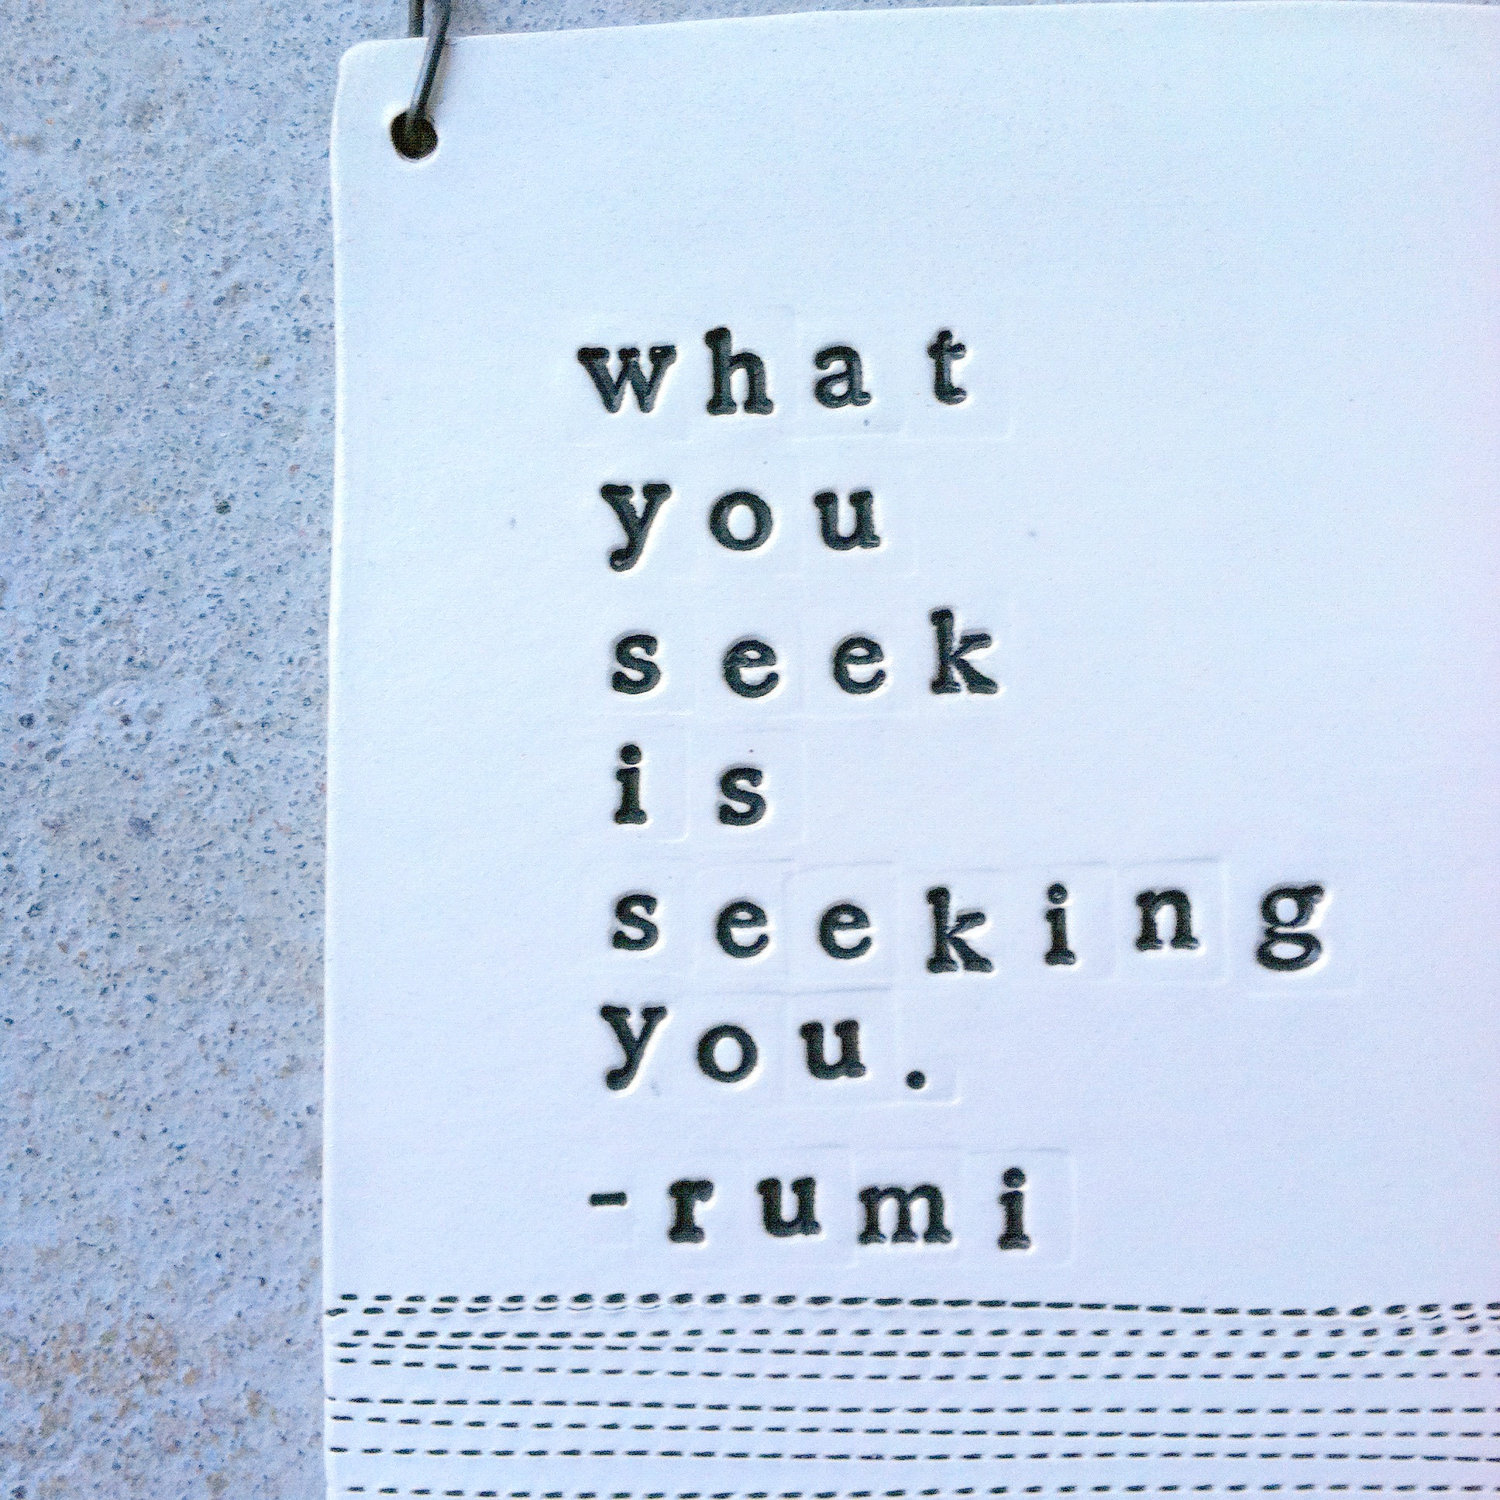 Inspiring Rumi Quotes And Images About Change Yourself First Doing